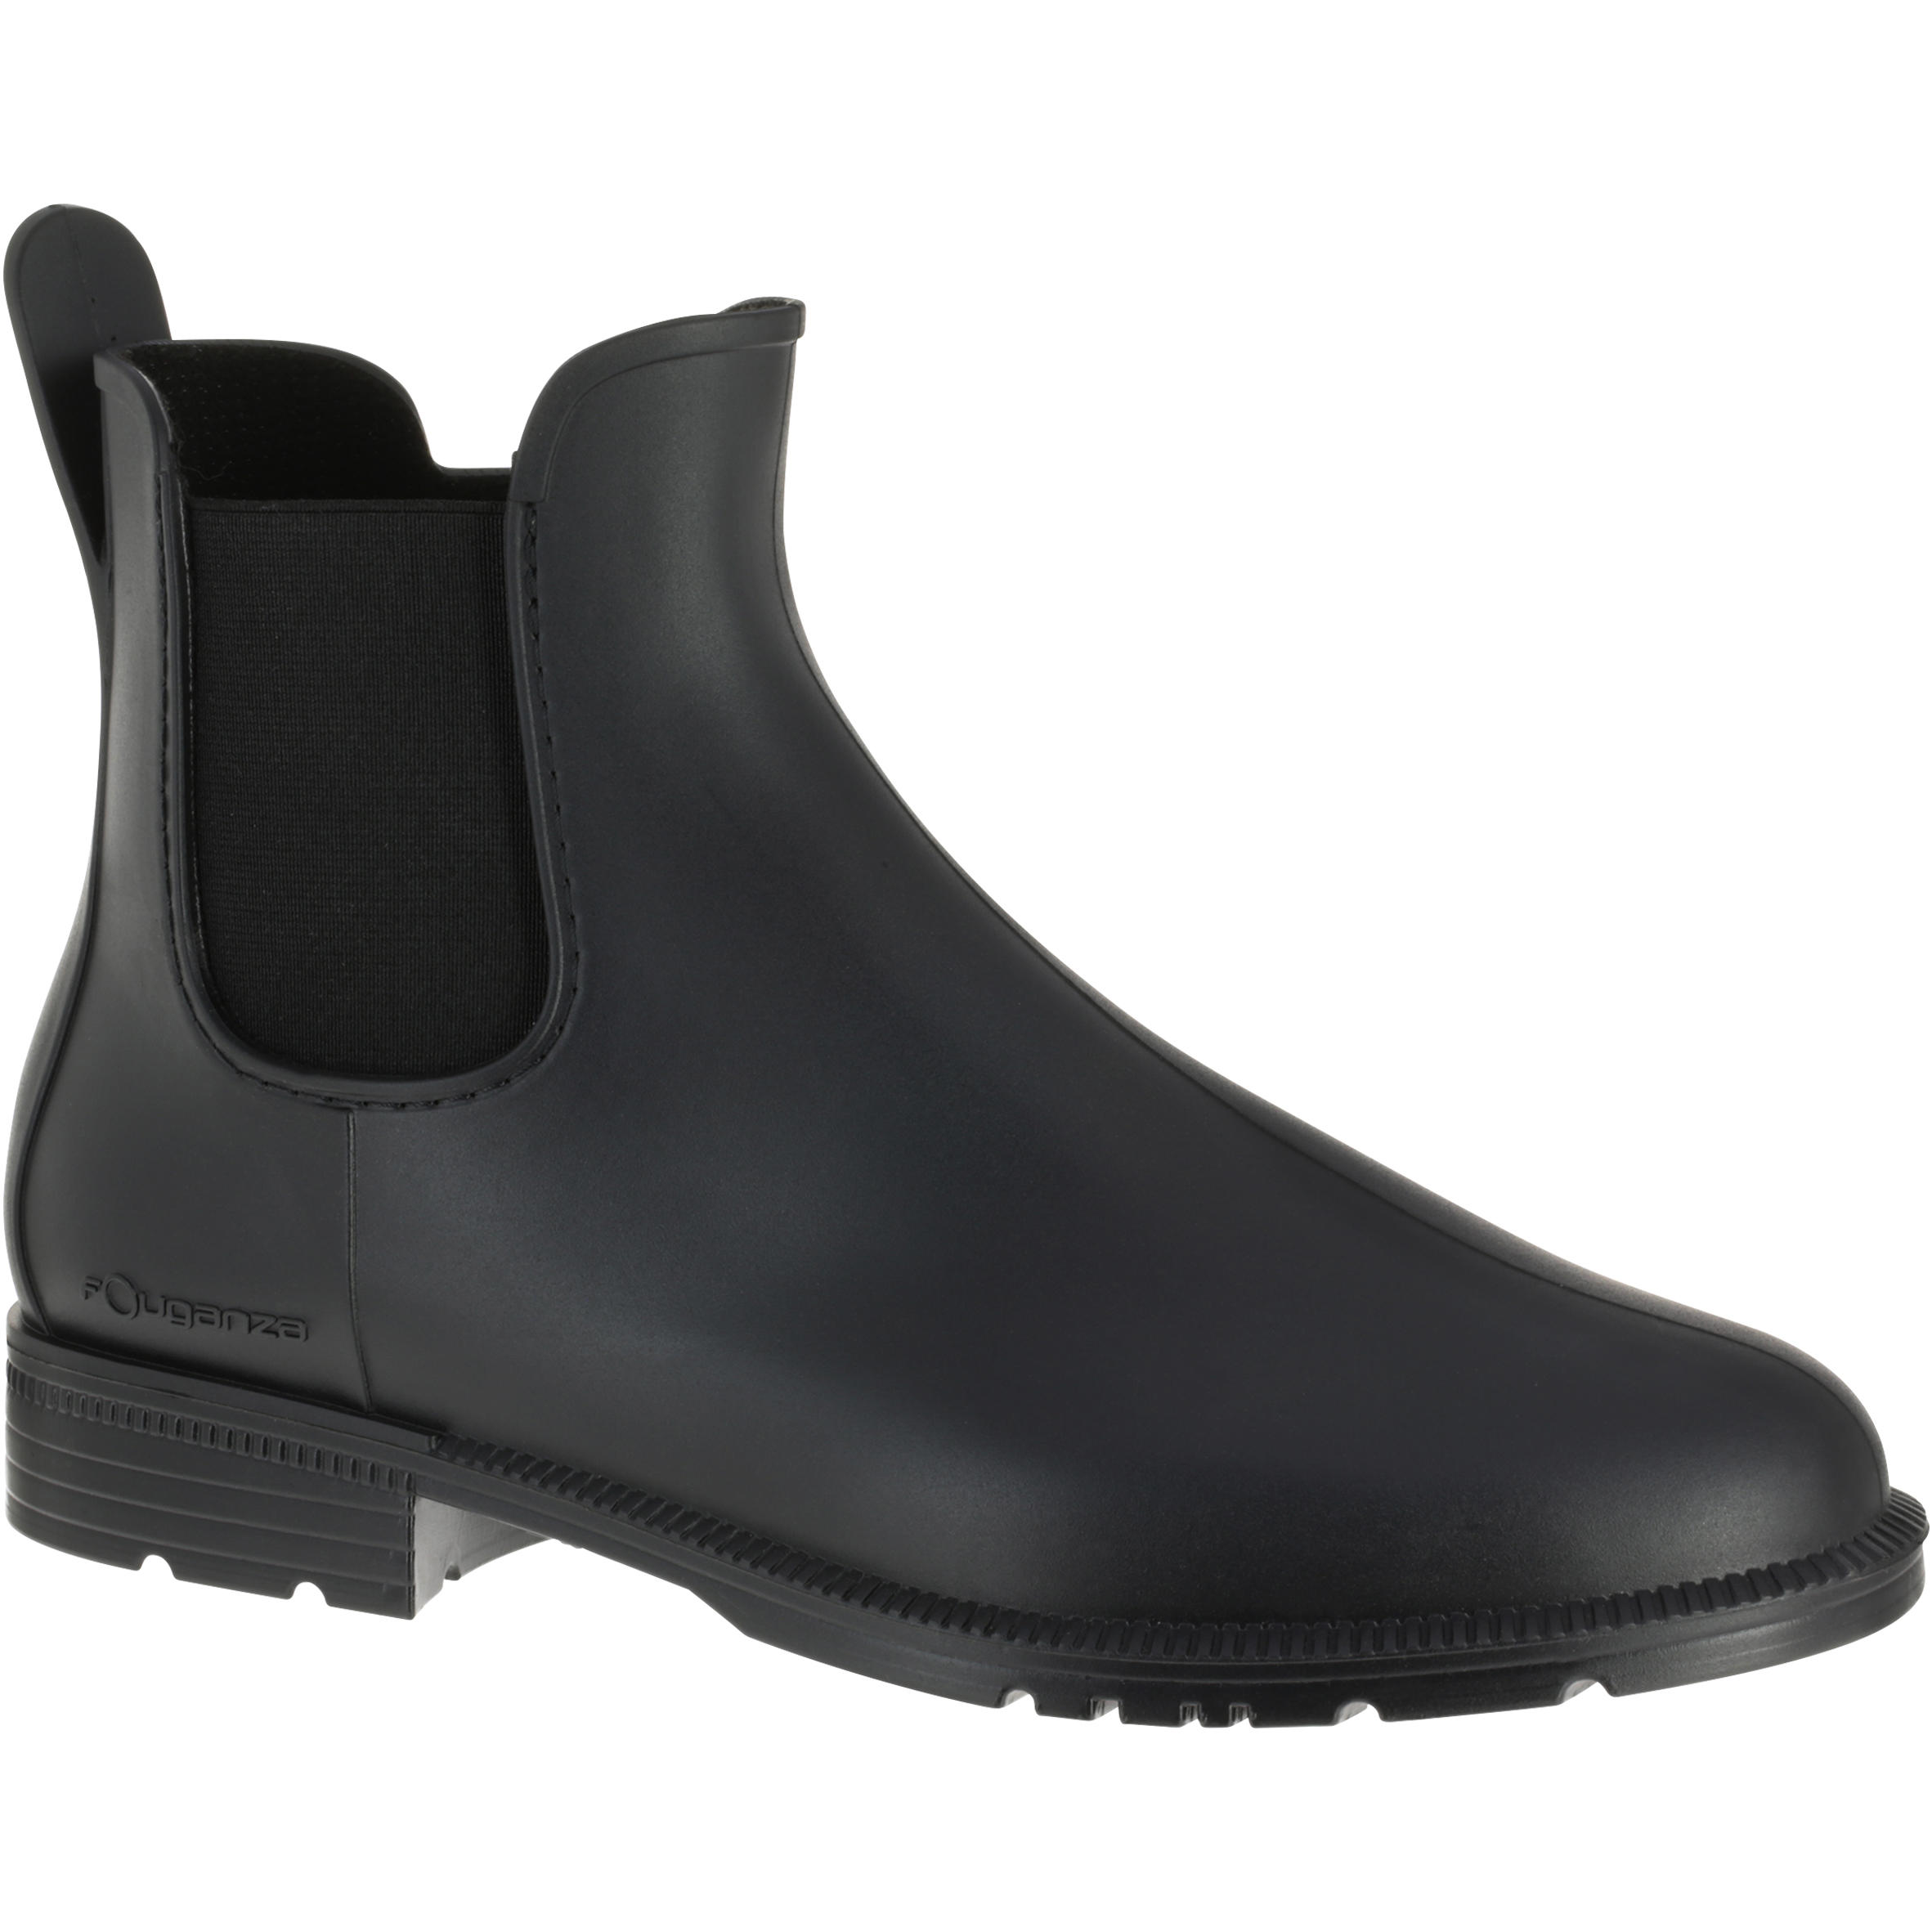 Schooling 100 Children's and Adult's Horseback Riding Jodhpur Boots - Black